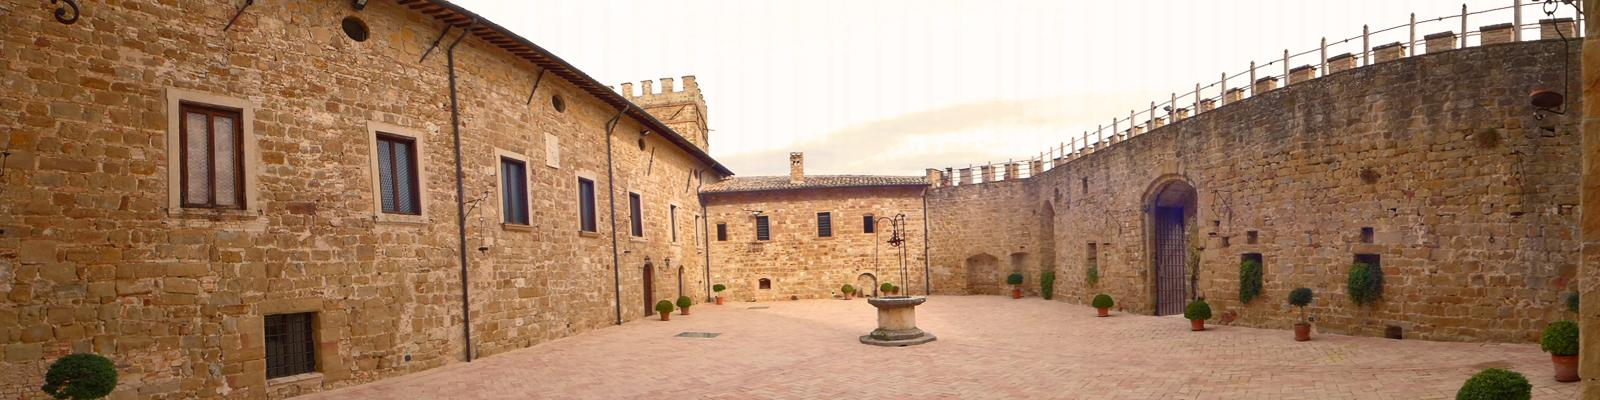 The courtyard surrounded by the castle's walls